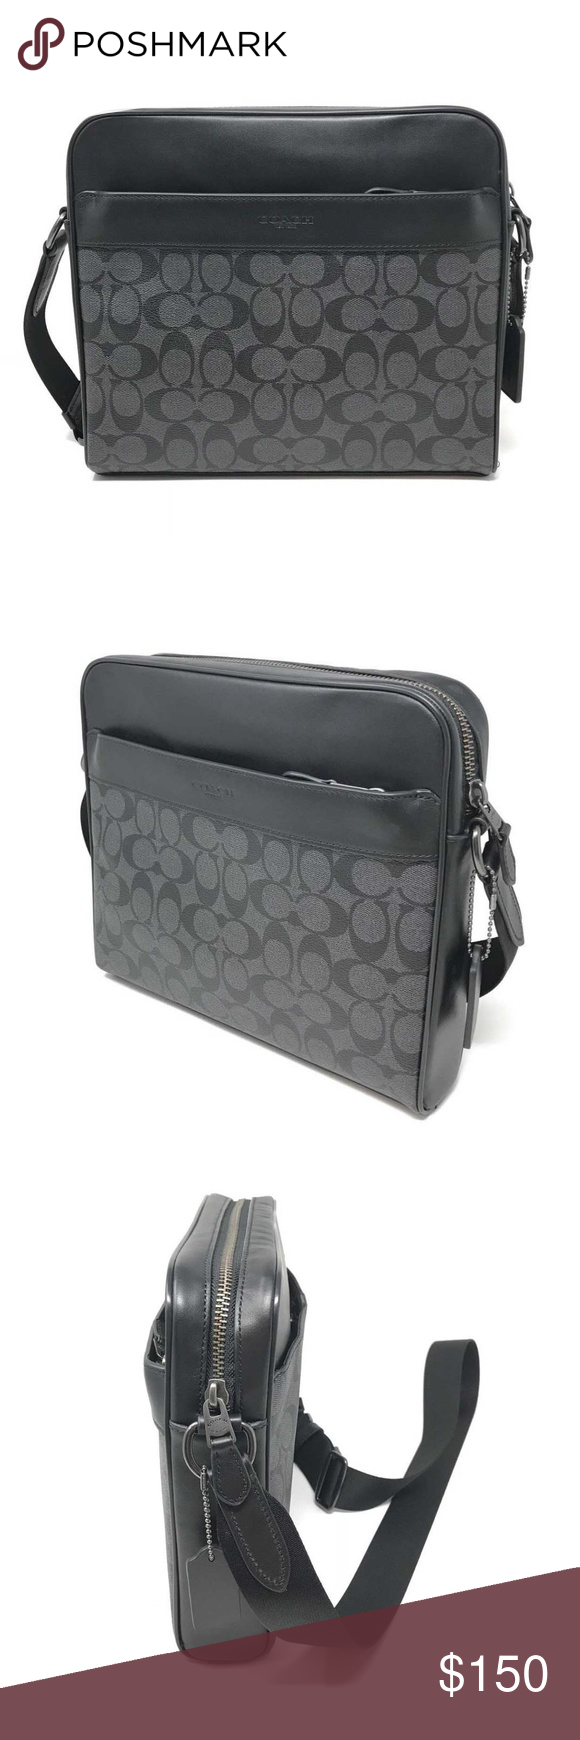 a45c374adbc3f Coach Men s Charles Camera Bag in Signature PVC Coach F28456 Men s Charles  Camera Bag in Signature PVC Charcoal Black Item  273627887732 100%  Authentic ...